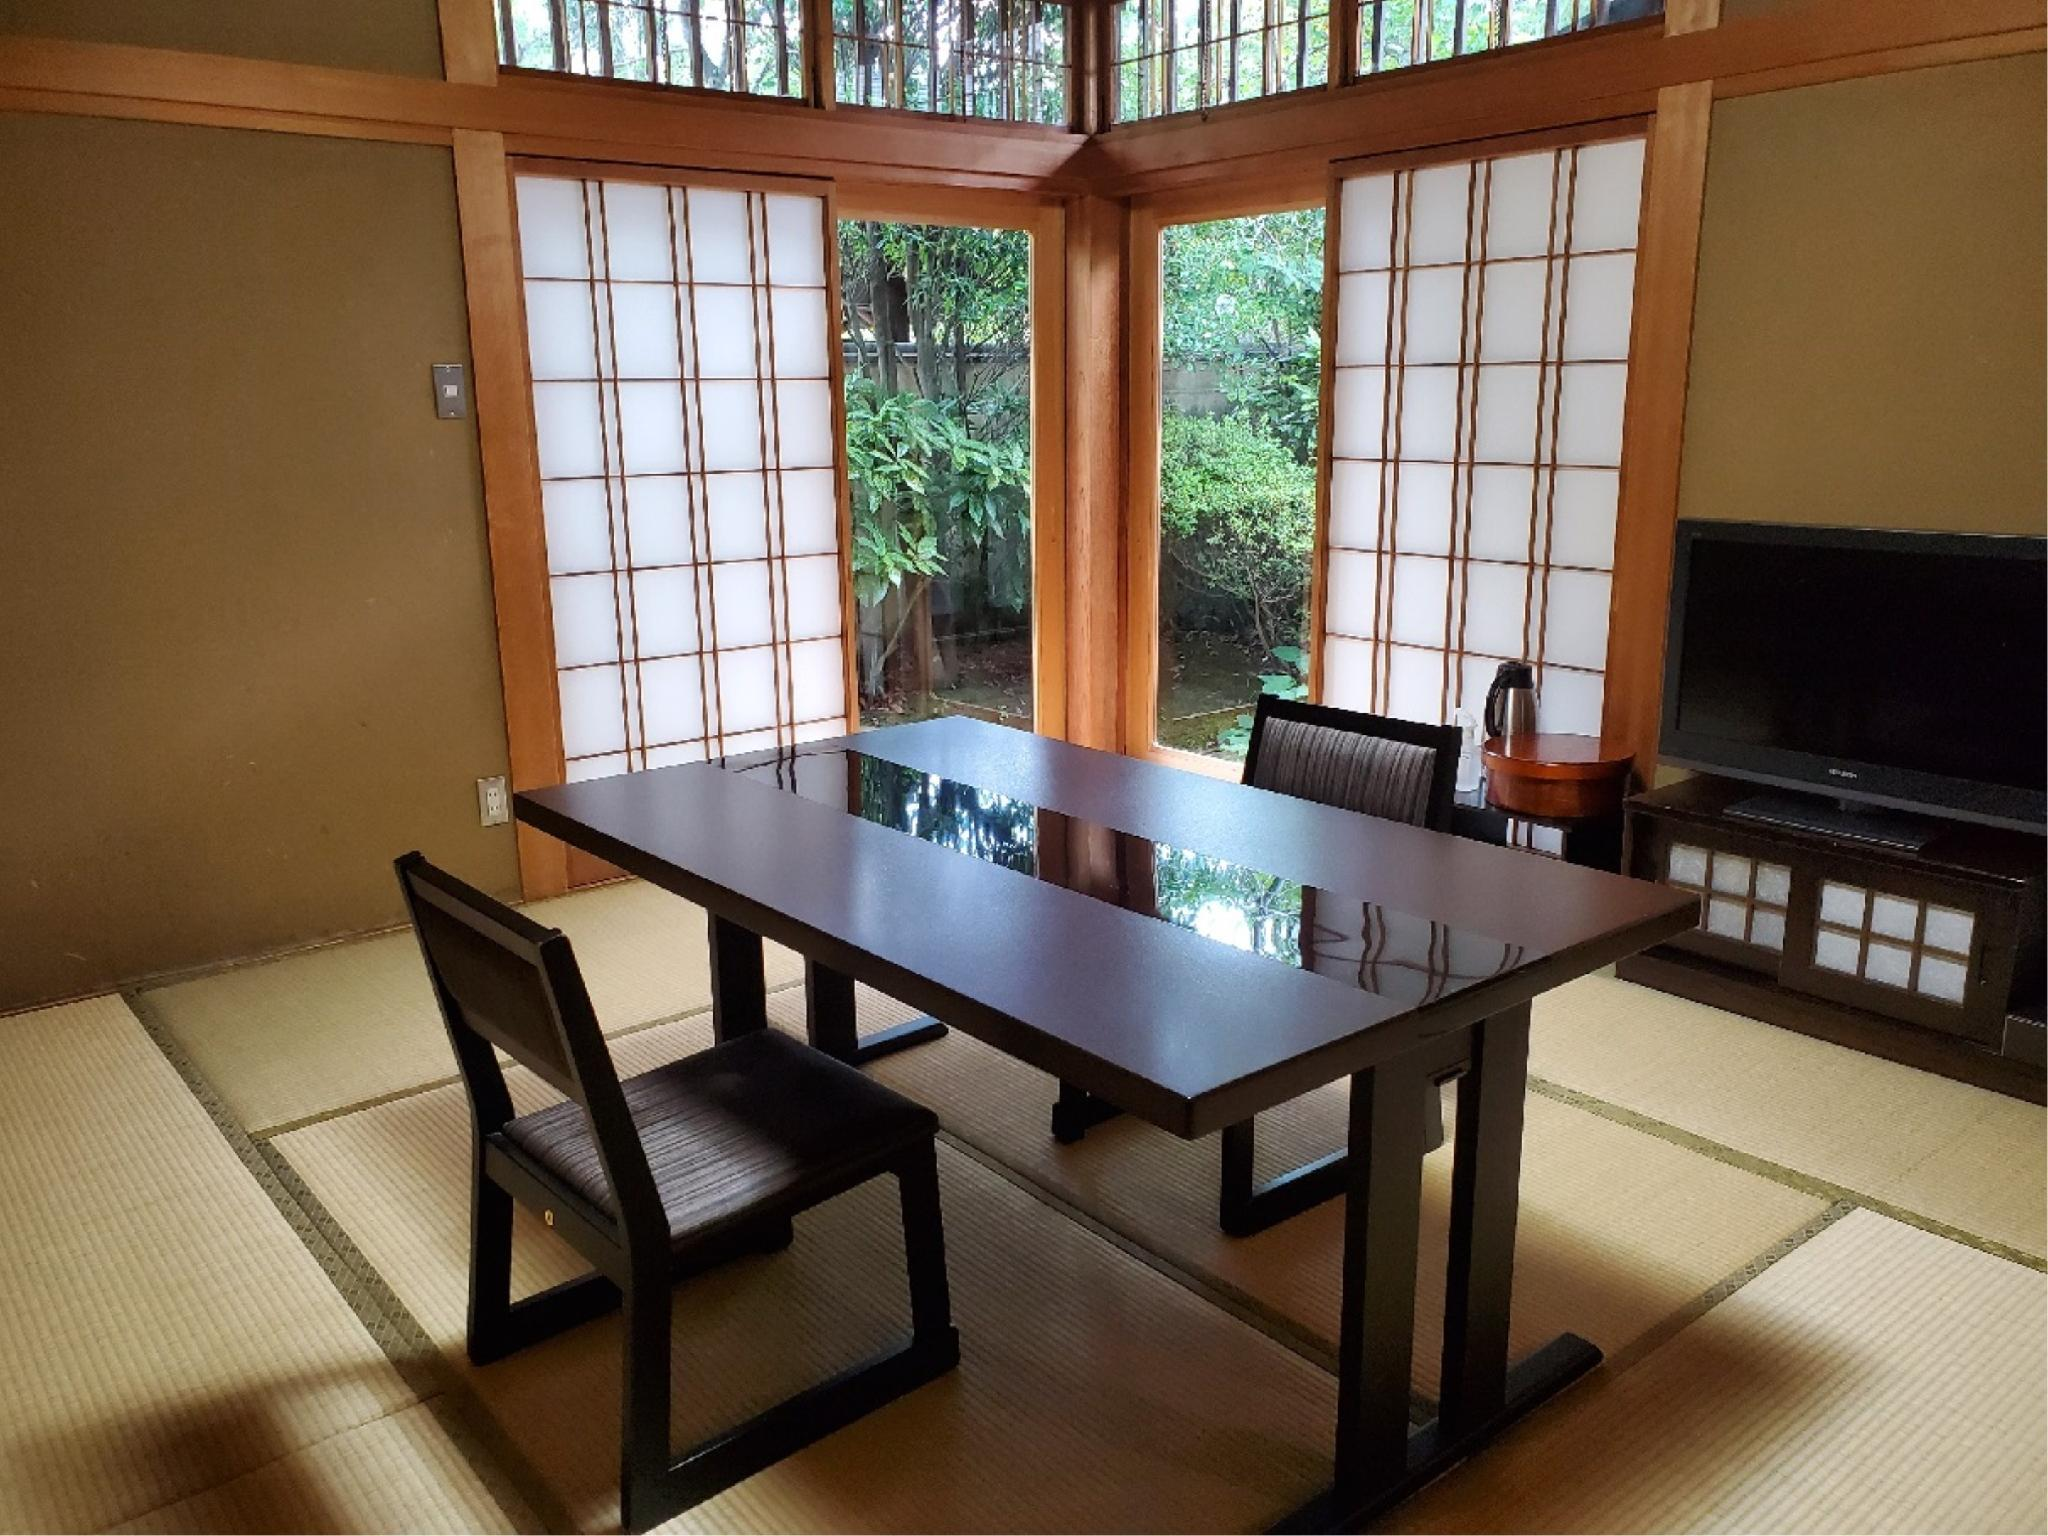 和洋式房(和式房+洋式房+露天风吕/2张床) (Japanese/Western-style Room with Open-air Bath (Japanese-style Room + Western-style Room, 2 Beds))